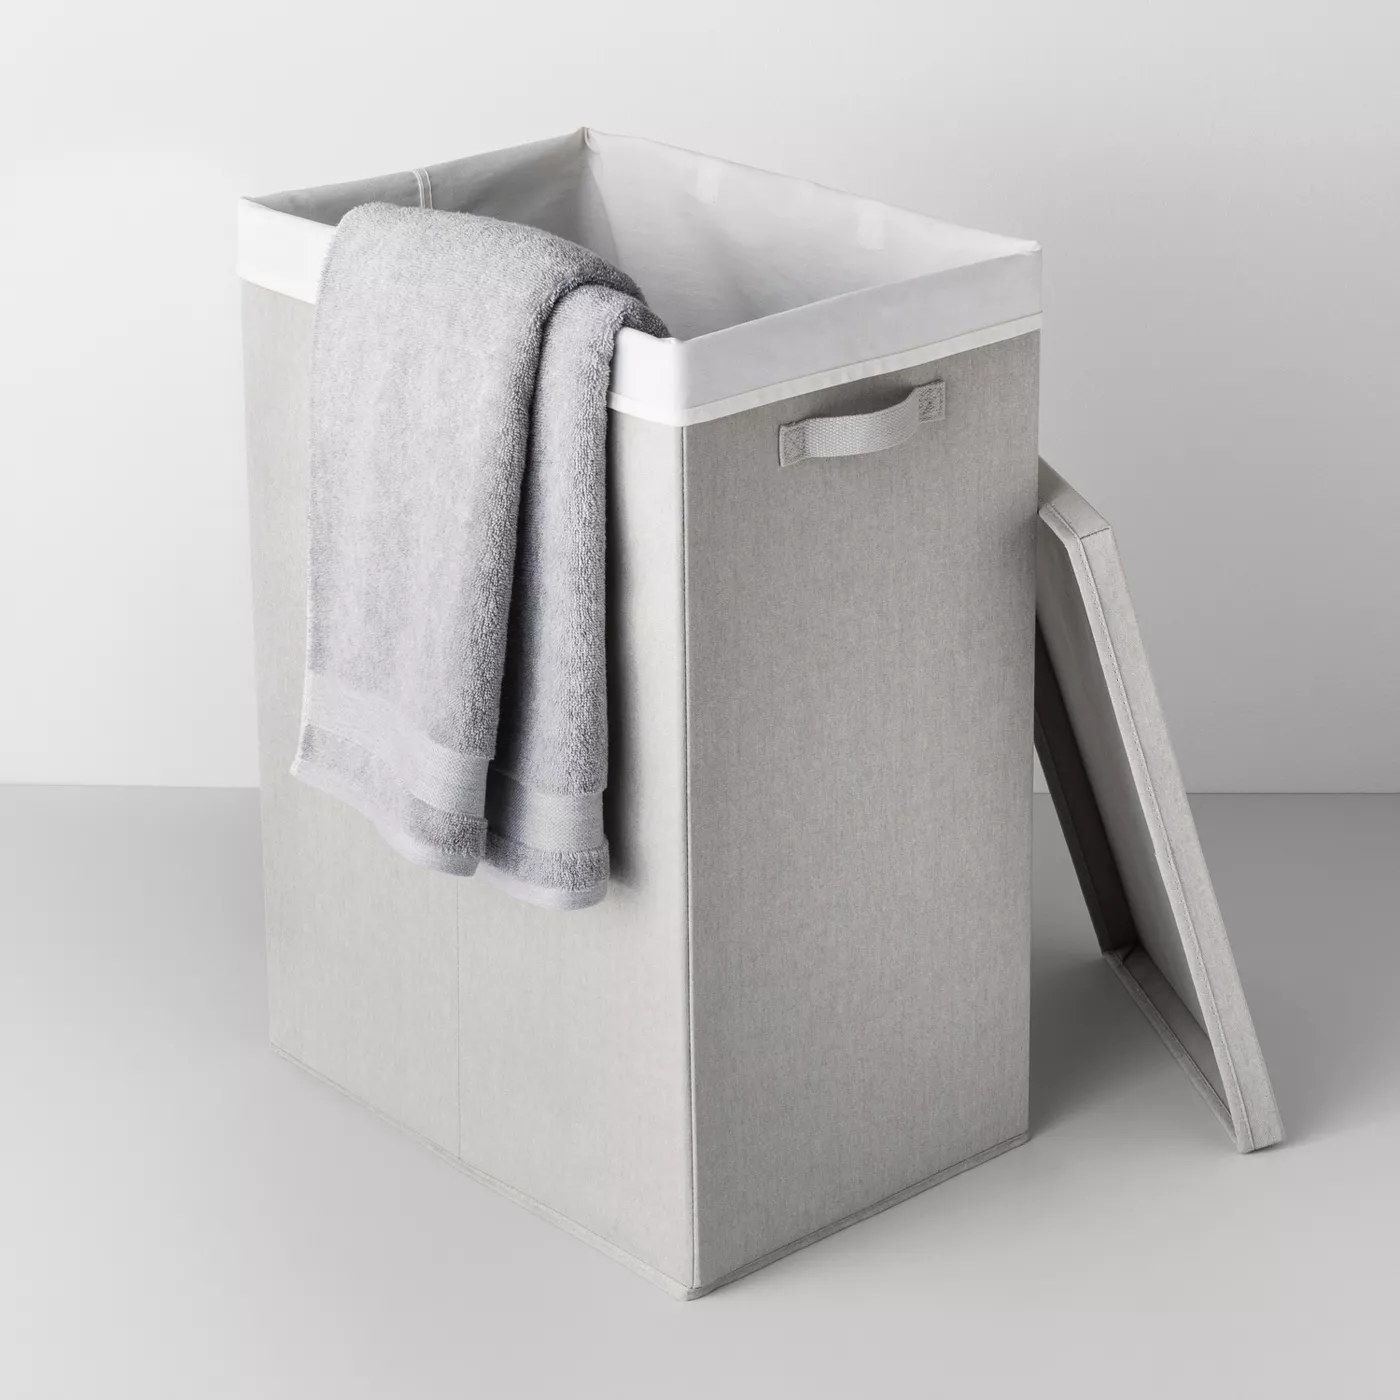 The rectangular hamper with a lining, side handle and matching top